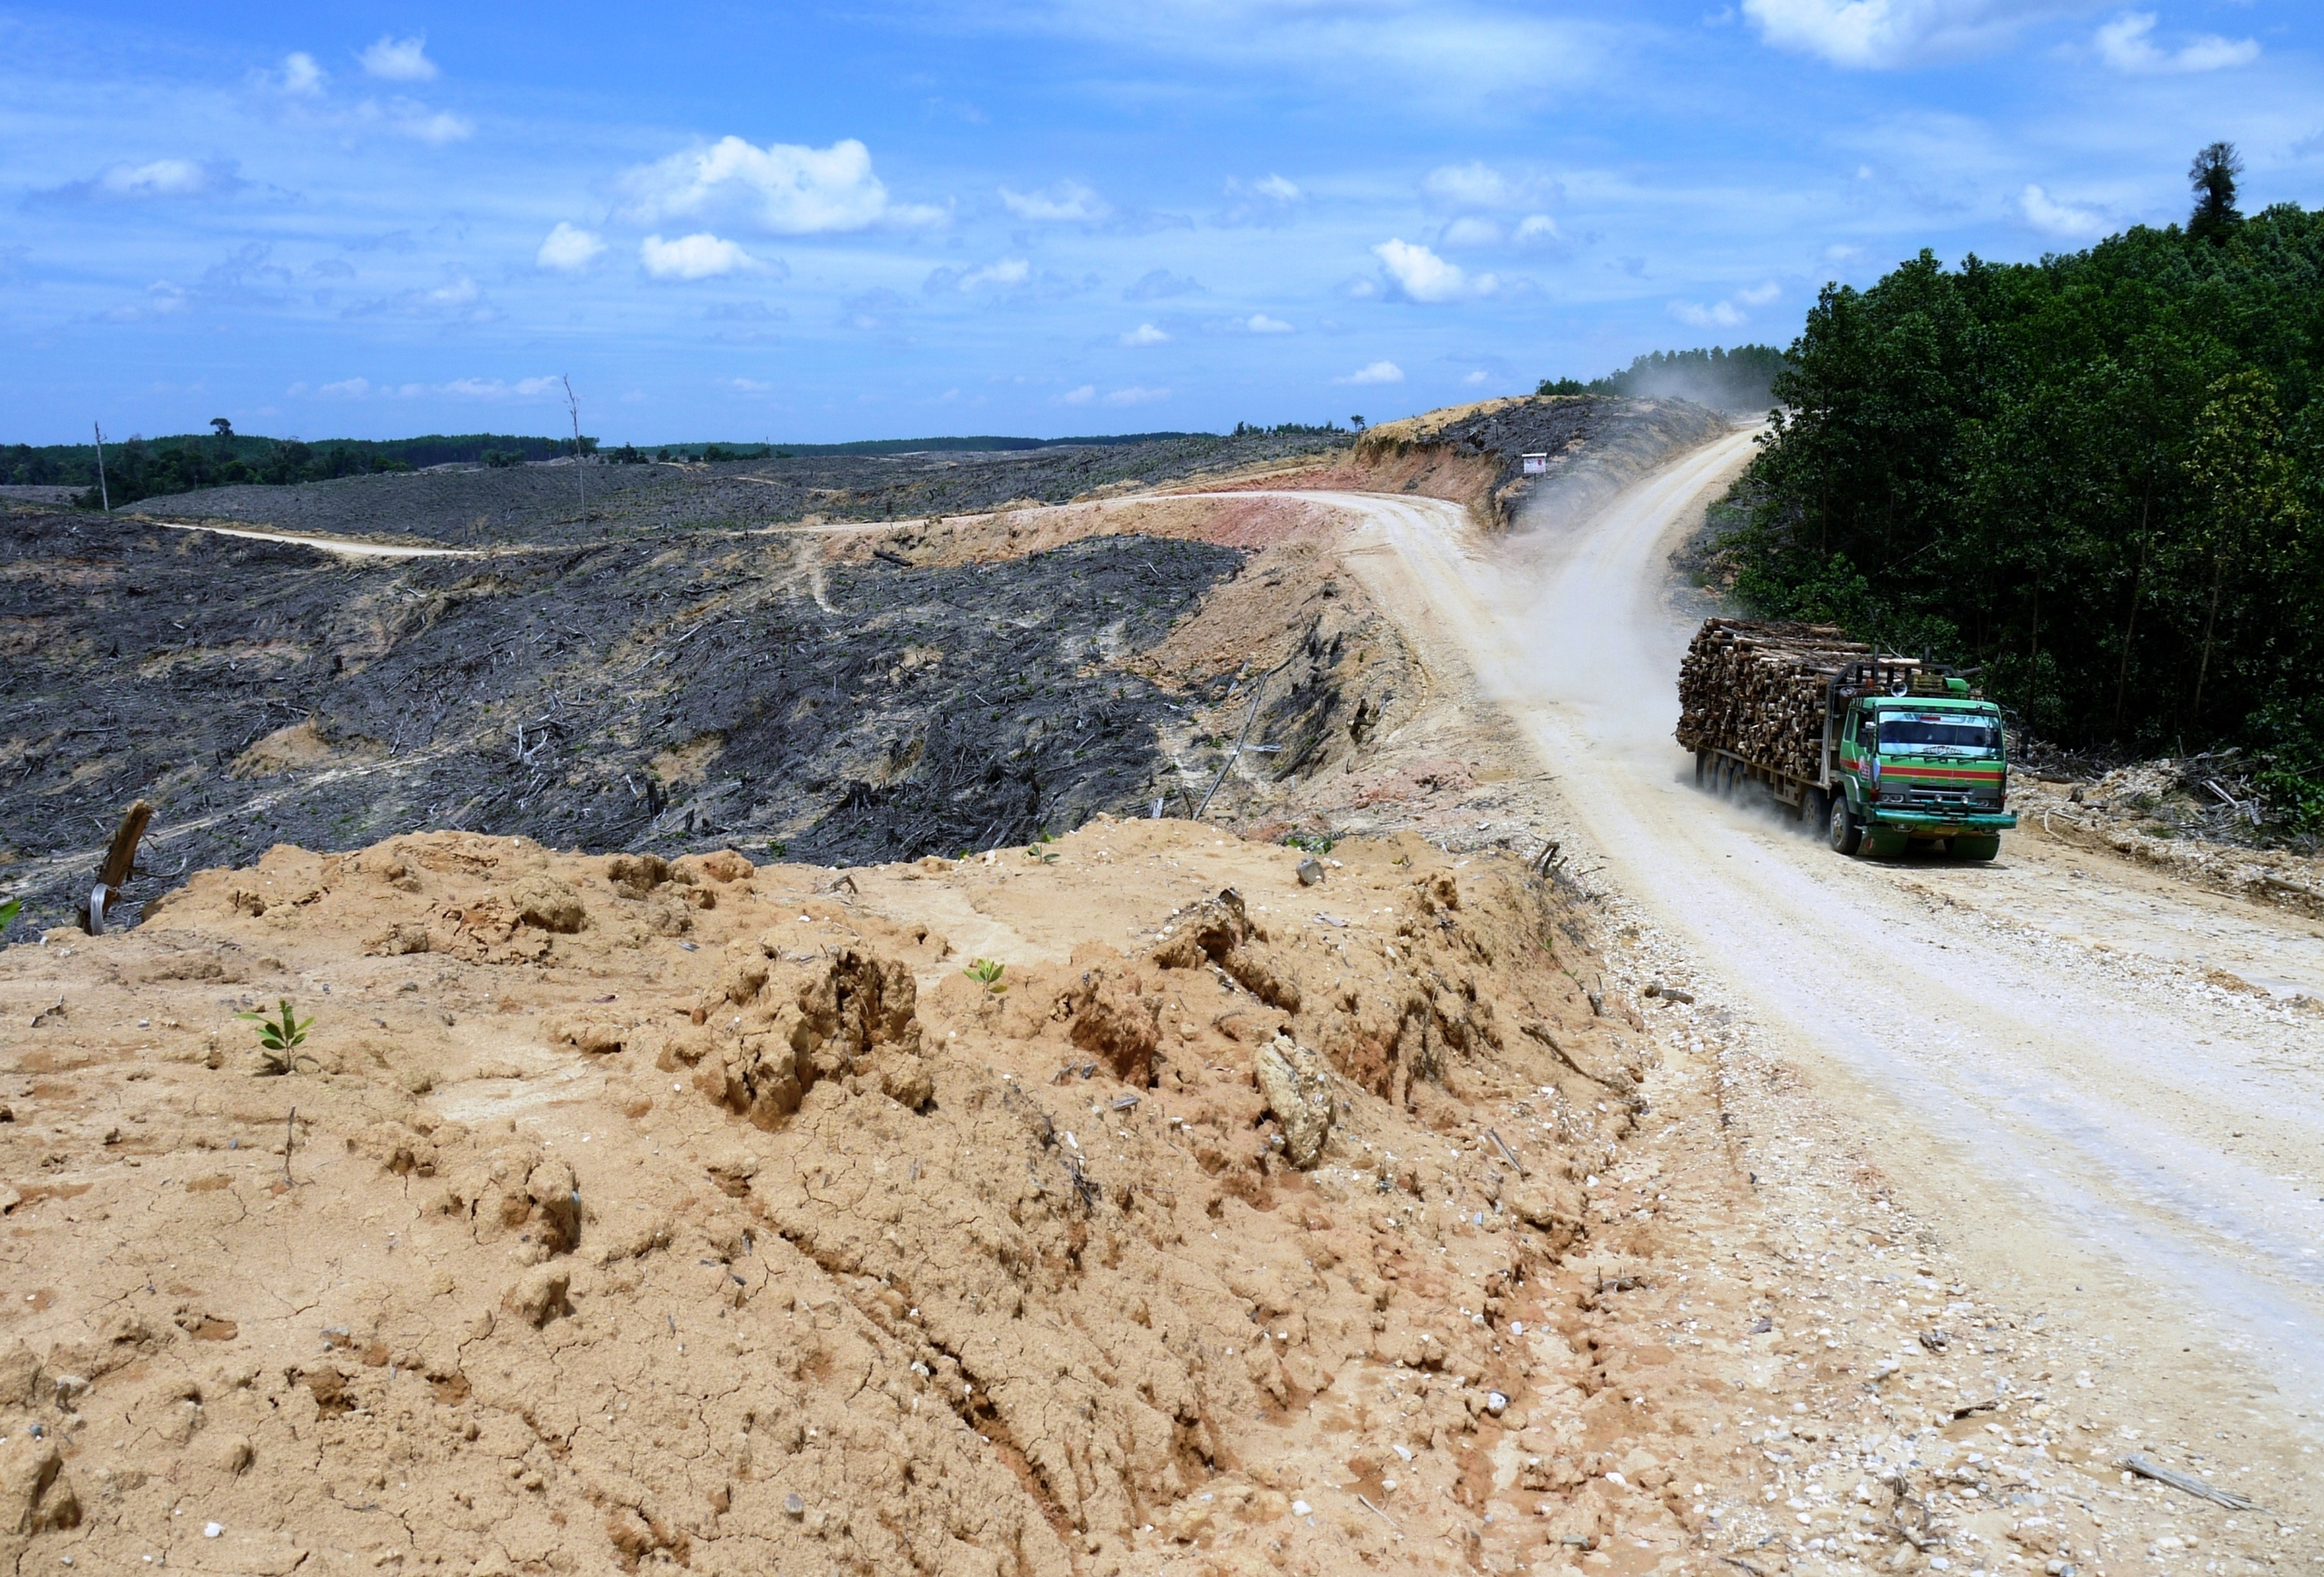 A rainforest cleared for wood pulp in Sumatra  (photo by William Laurance)